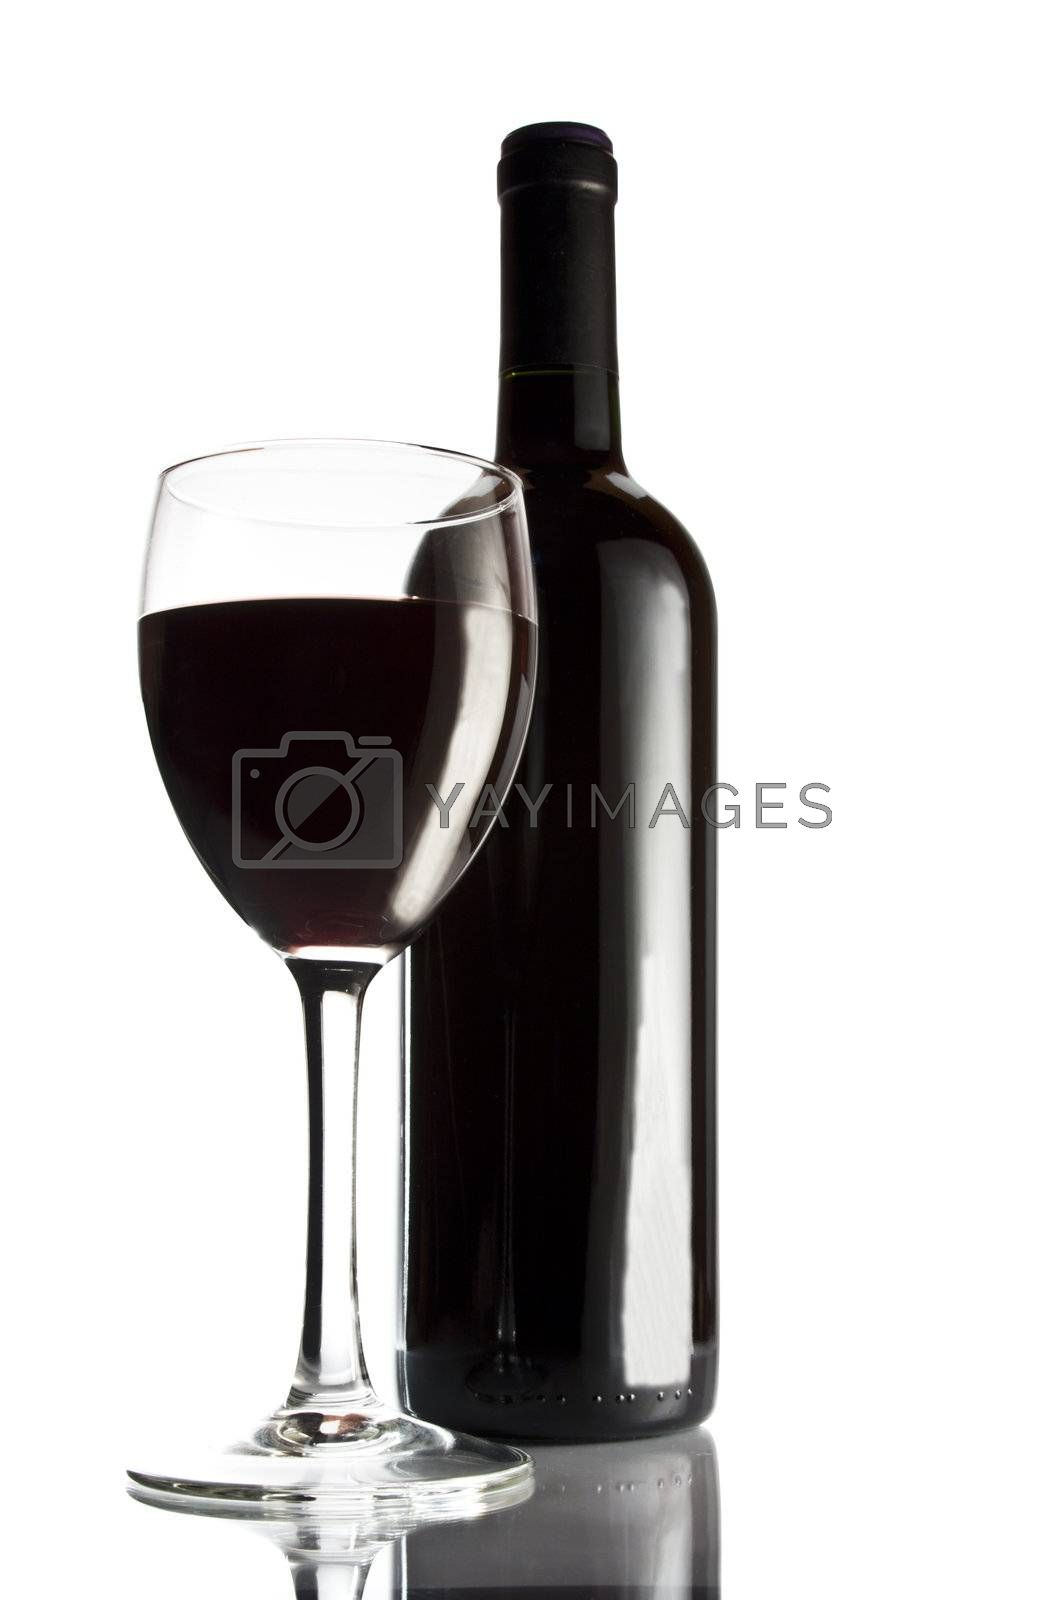 Bottle of red wine and glass. Studio shot.